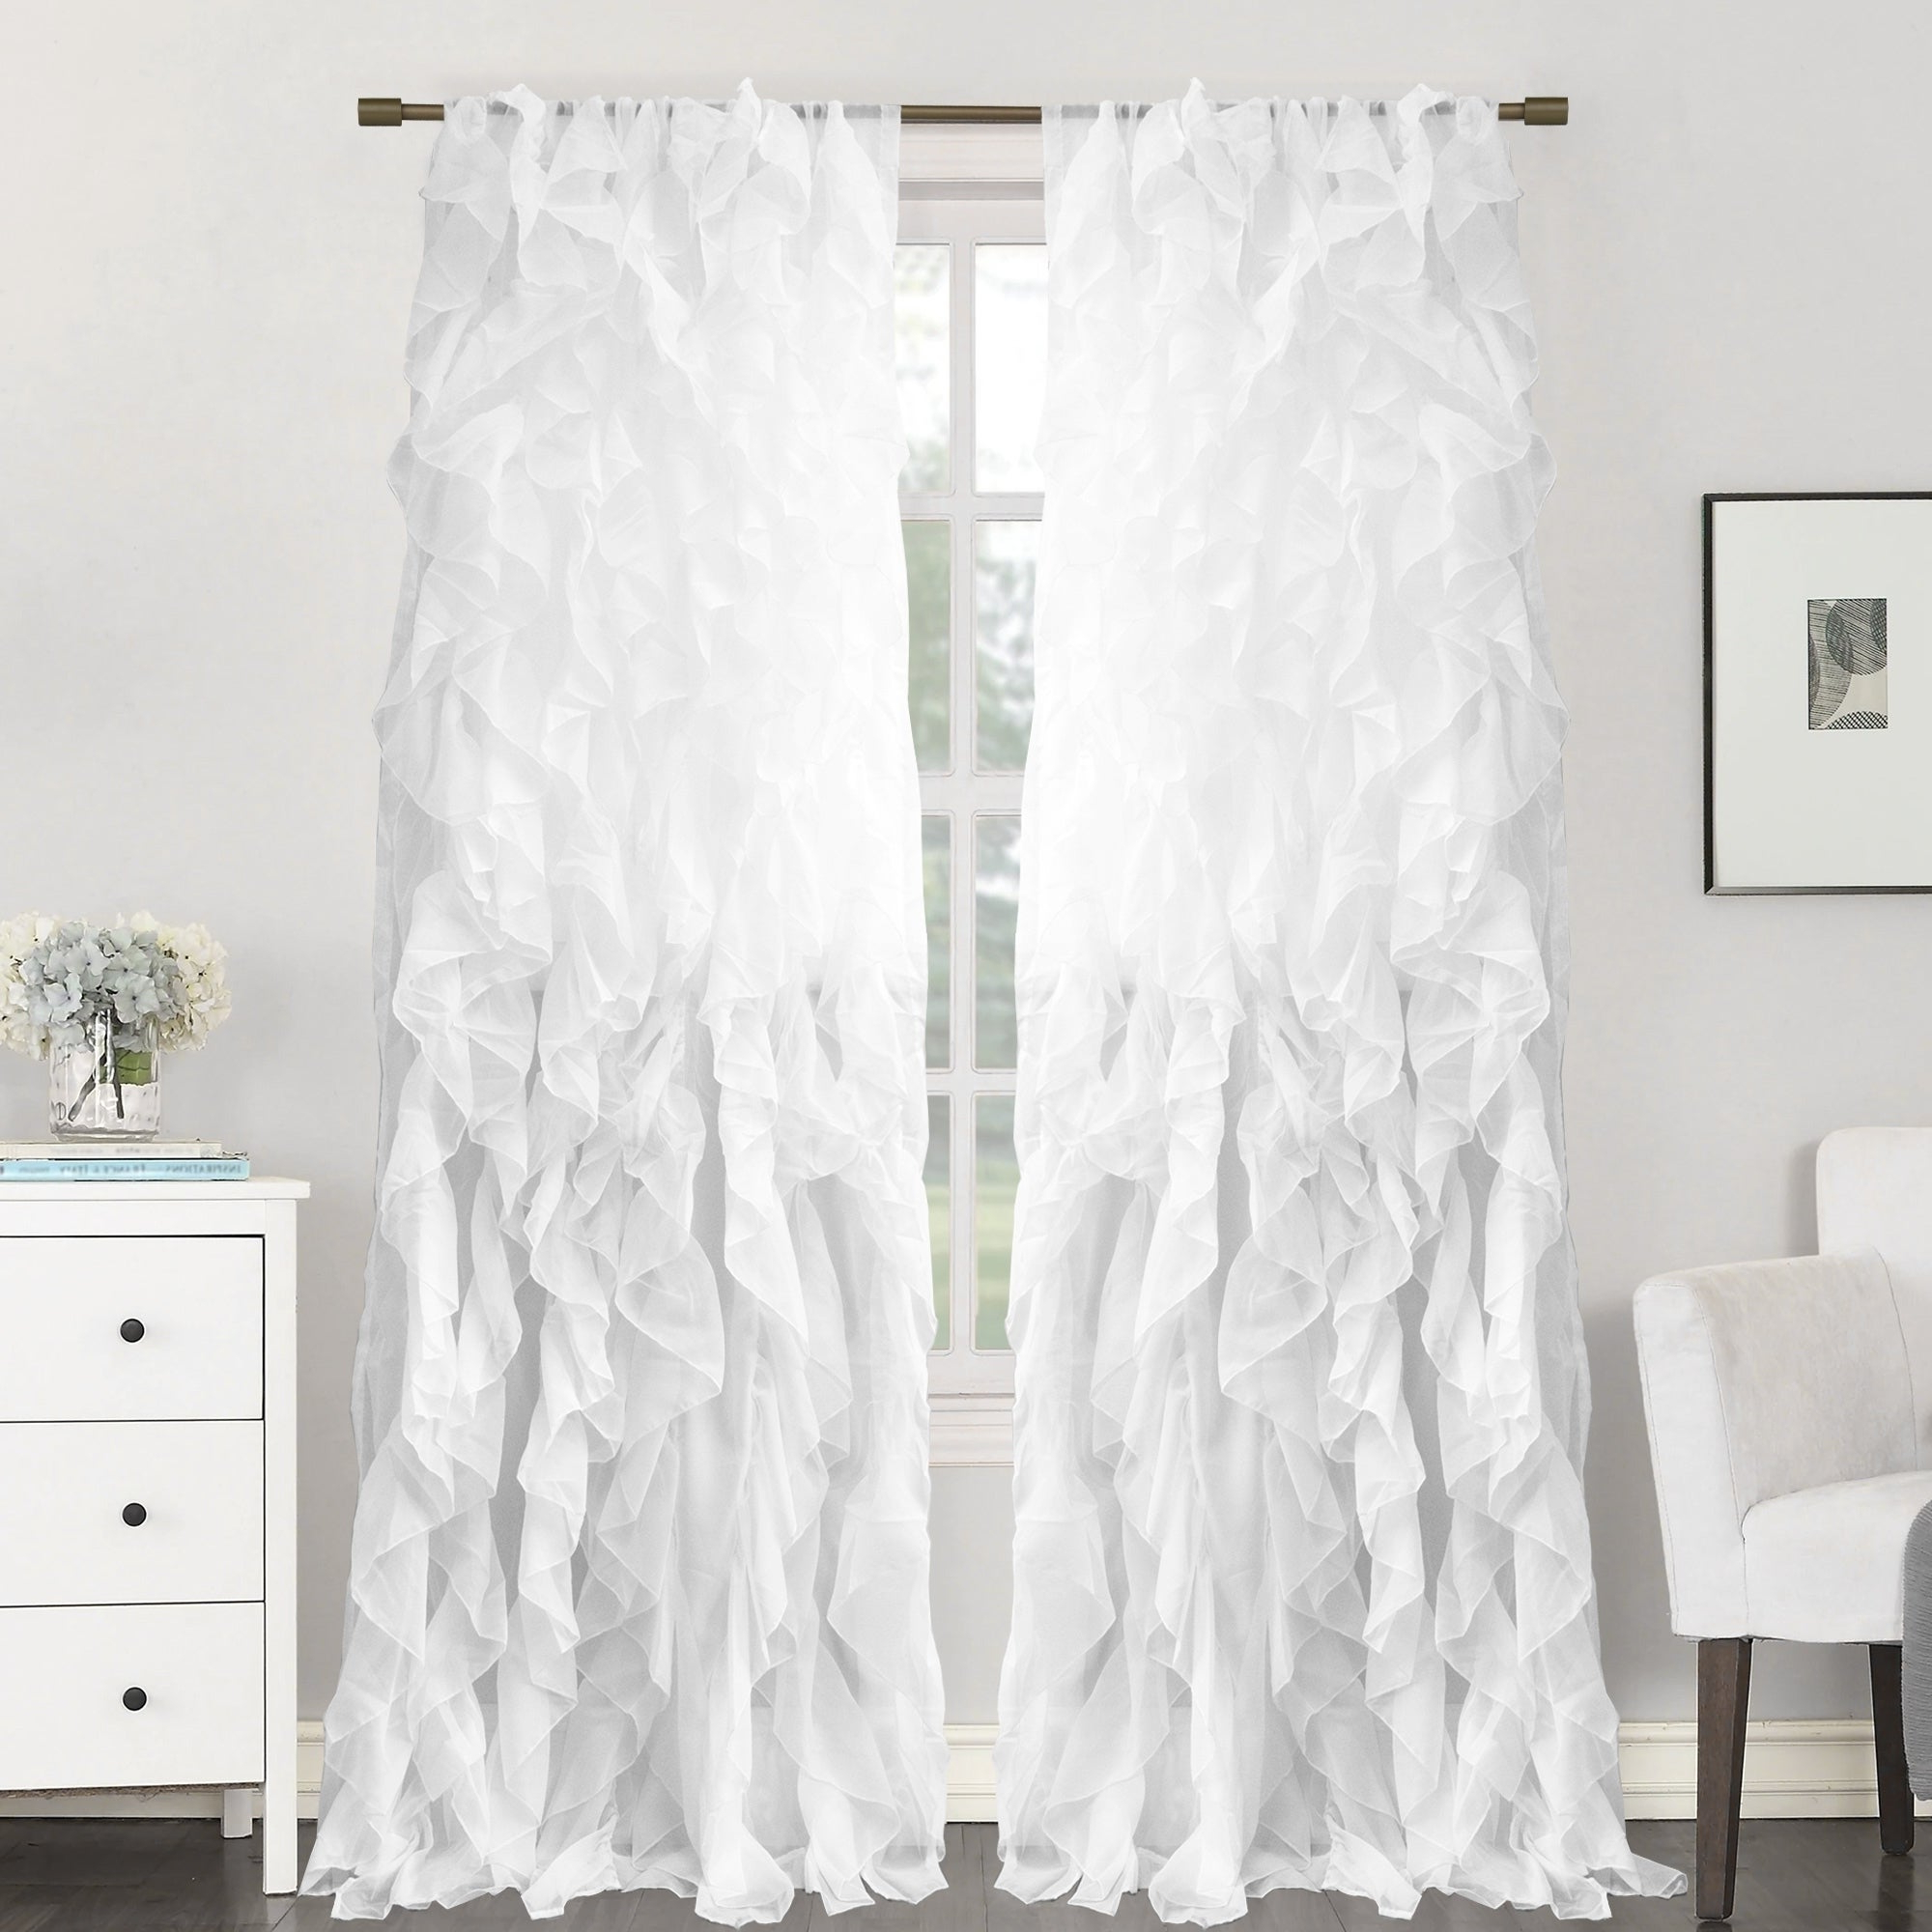 """Sheer Voile Ruffled Tier Window Curtain Panels Within Most Recent Sweet Home Collection Sheer Voile Waterfall Ruffled Tier 84 Inch Single  Curtain Panel – 84"""" Long X 50"""" Wide (View 15 of 20)"""